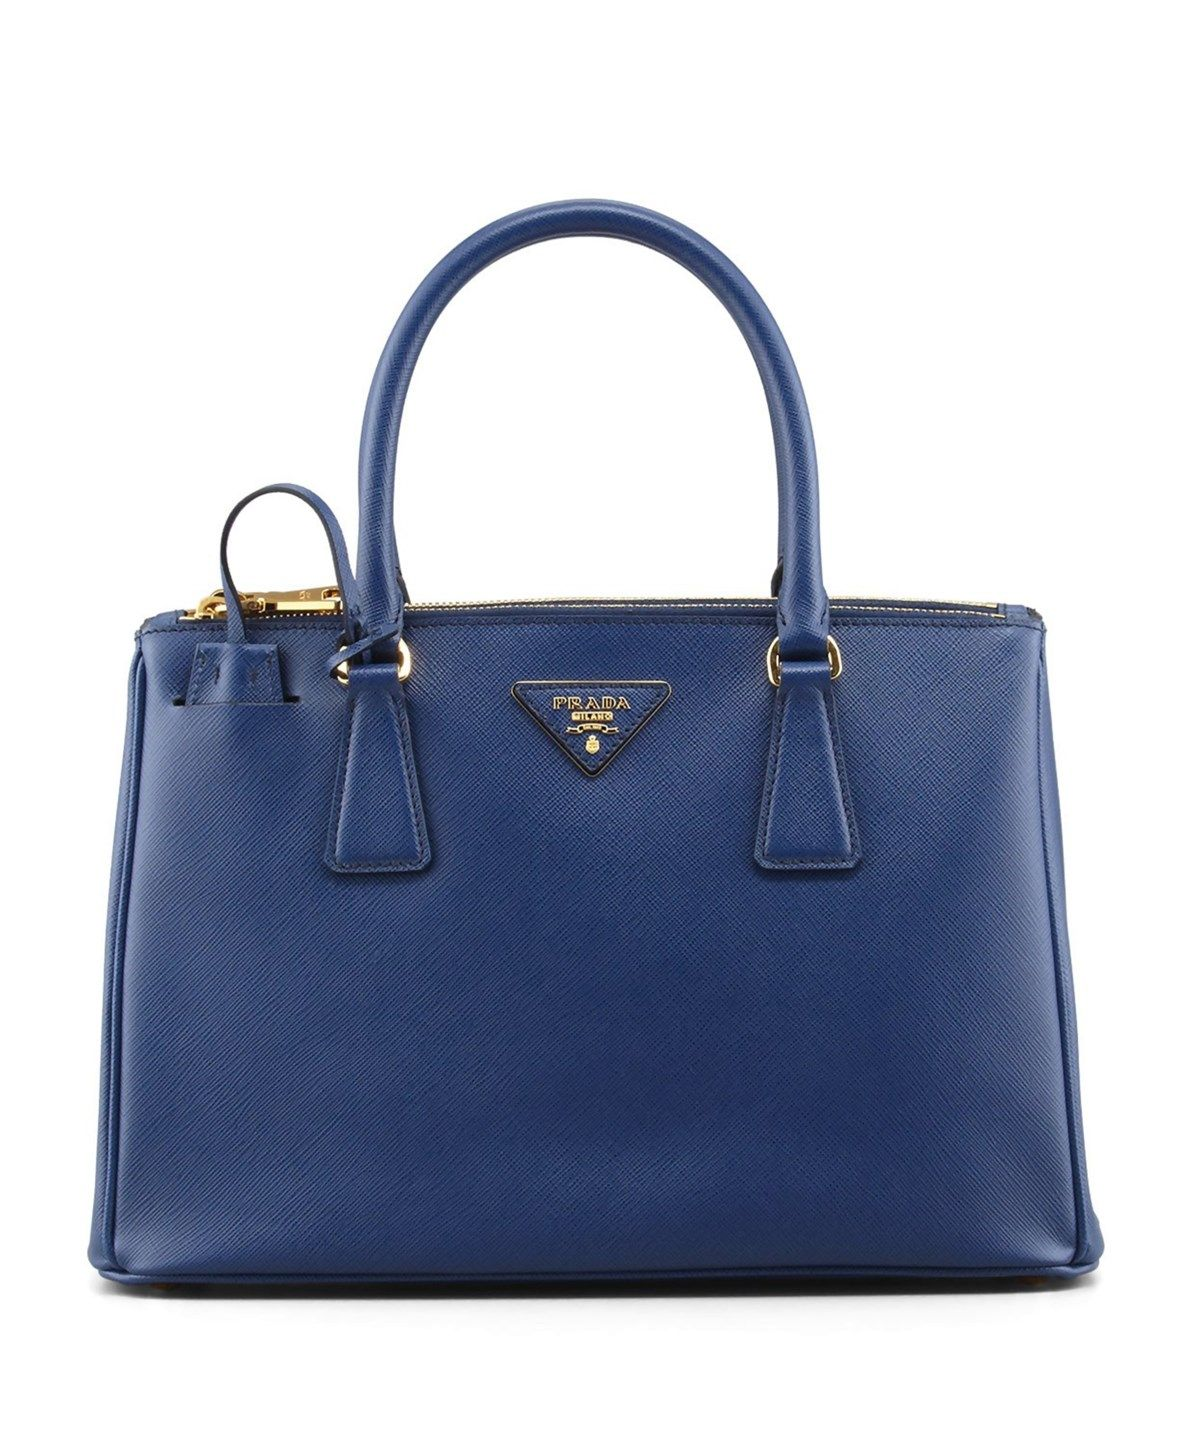 5112f55b0aa2 PRADA Saffiano Leather Tote Handbag Bluette .  prada  bags  shoulder bags   hand bags  leather  tote  lining